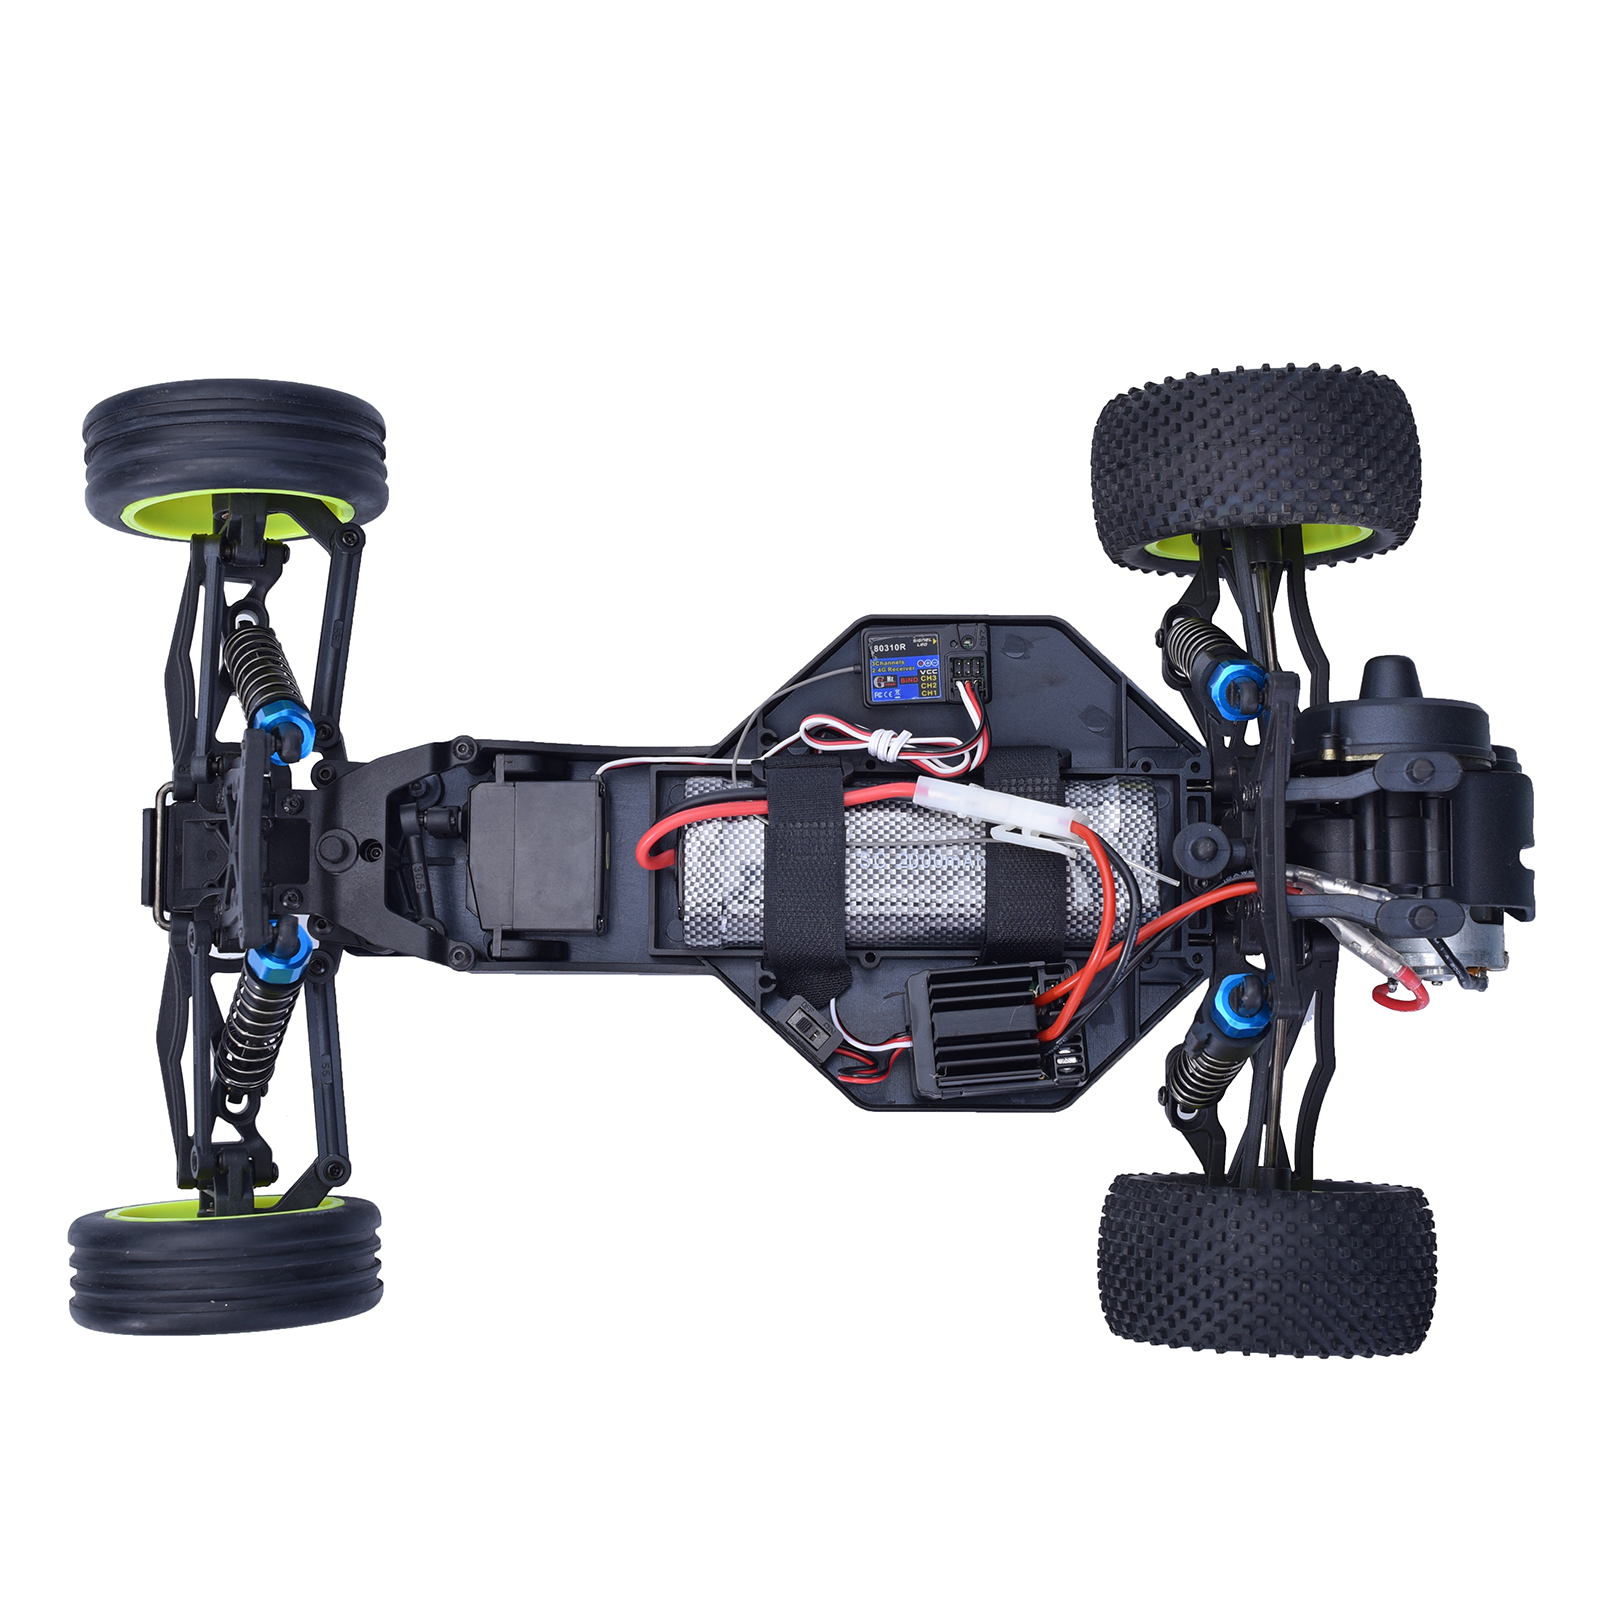 hsp rc car 1 10 scale 2wd electric power buggy racing drift car 94602 ebay. Black Bedroom Furniture Sets. Home Design Ideas